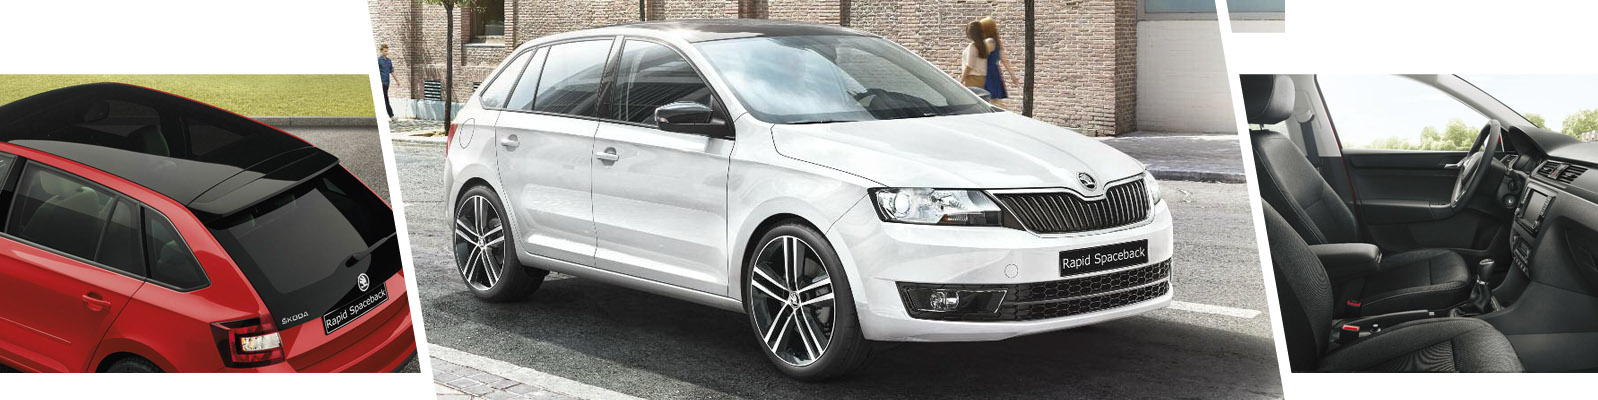 Practical, stylish and fun. The new SKODA Rapid Spaceback From Rainworth ŠKODA, Mansfield, Nottinghamshire.